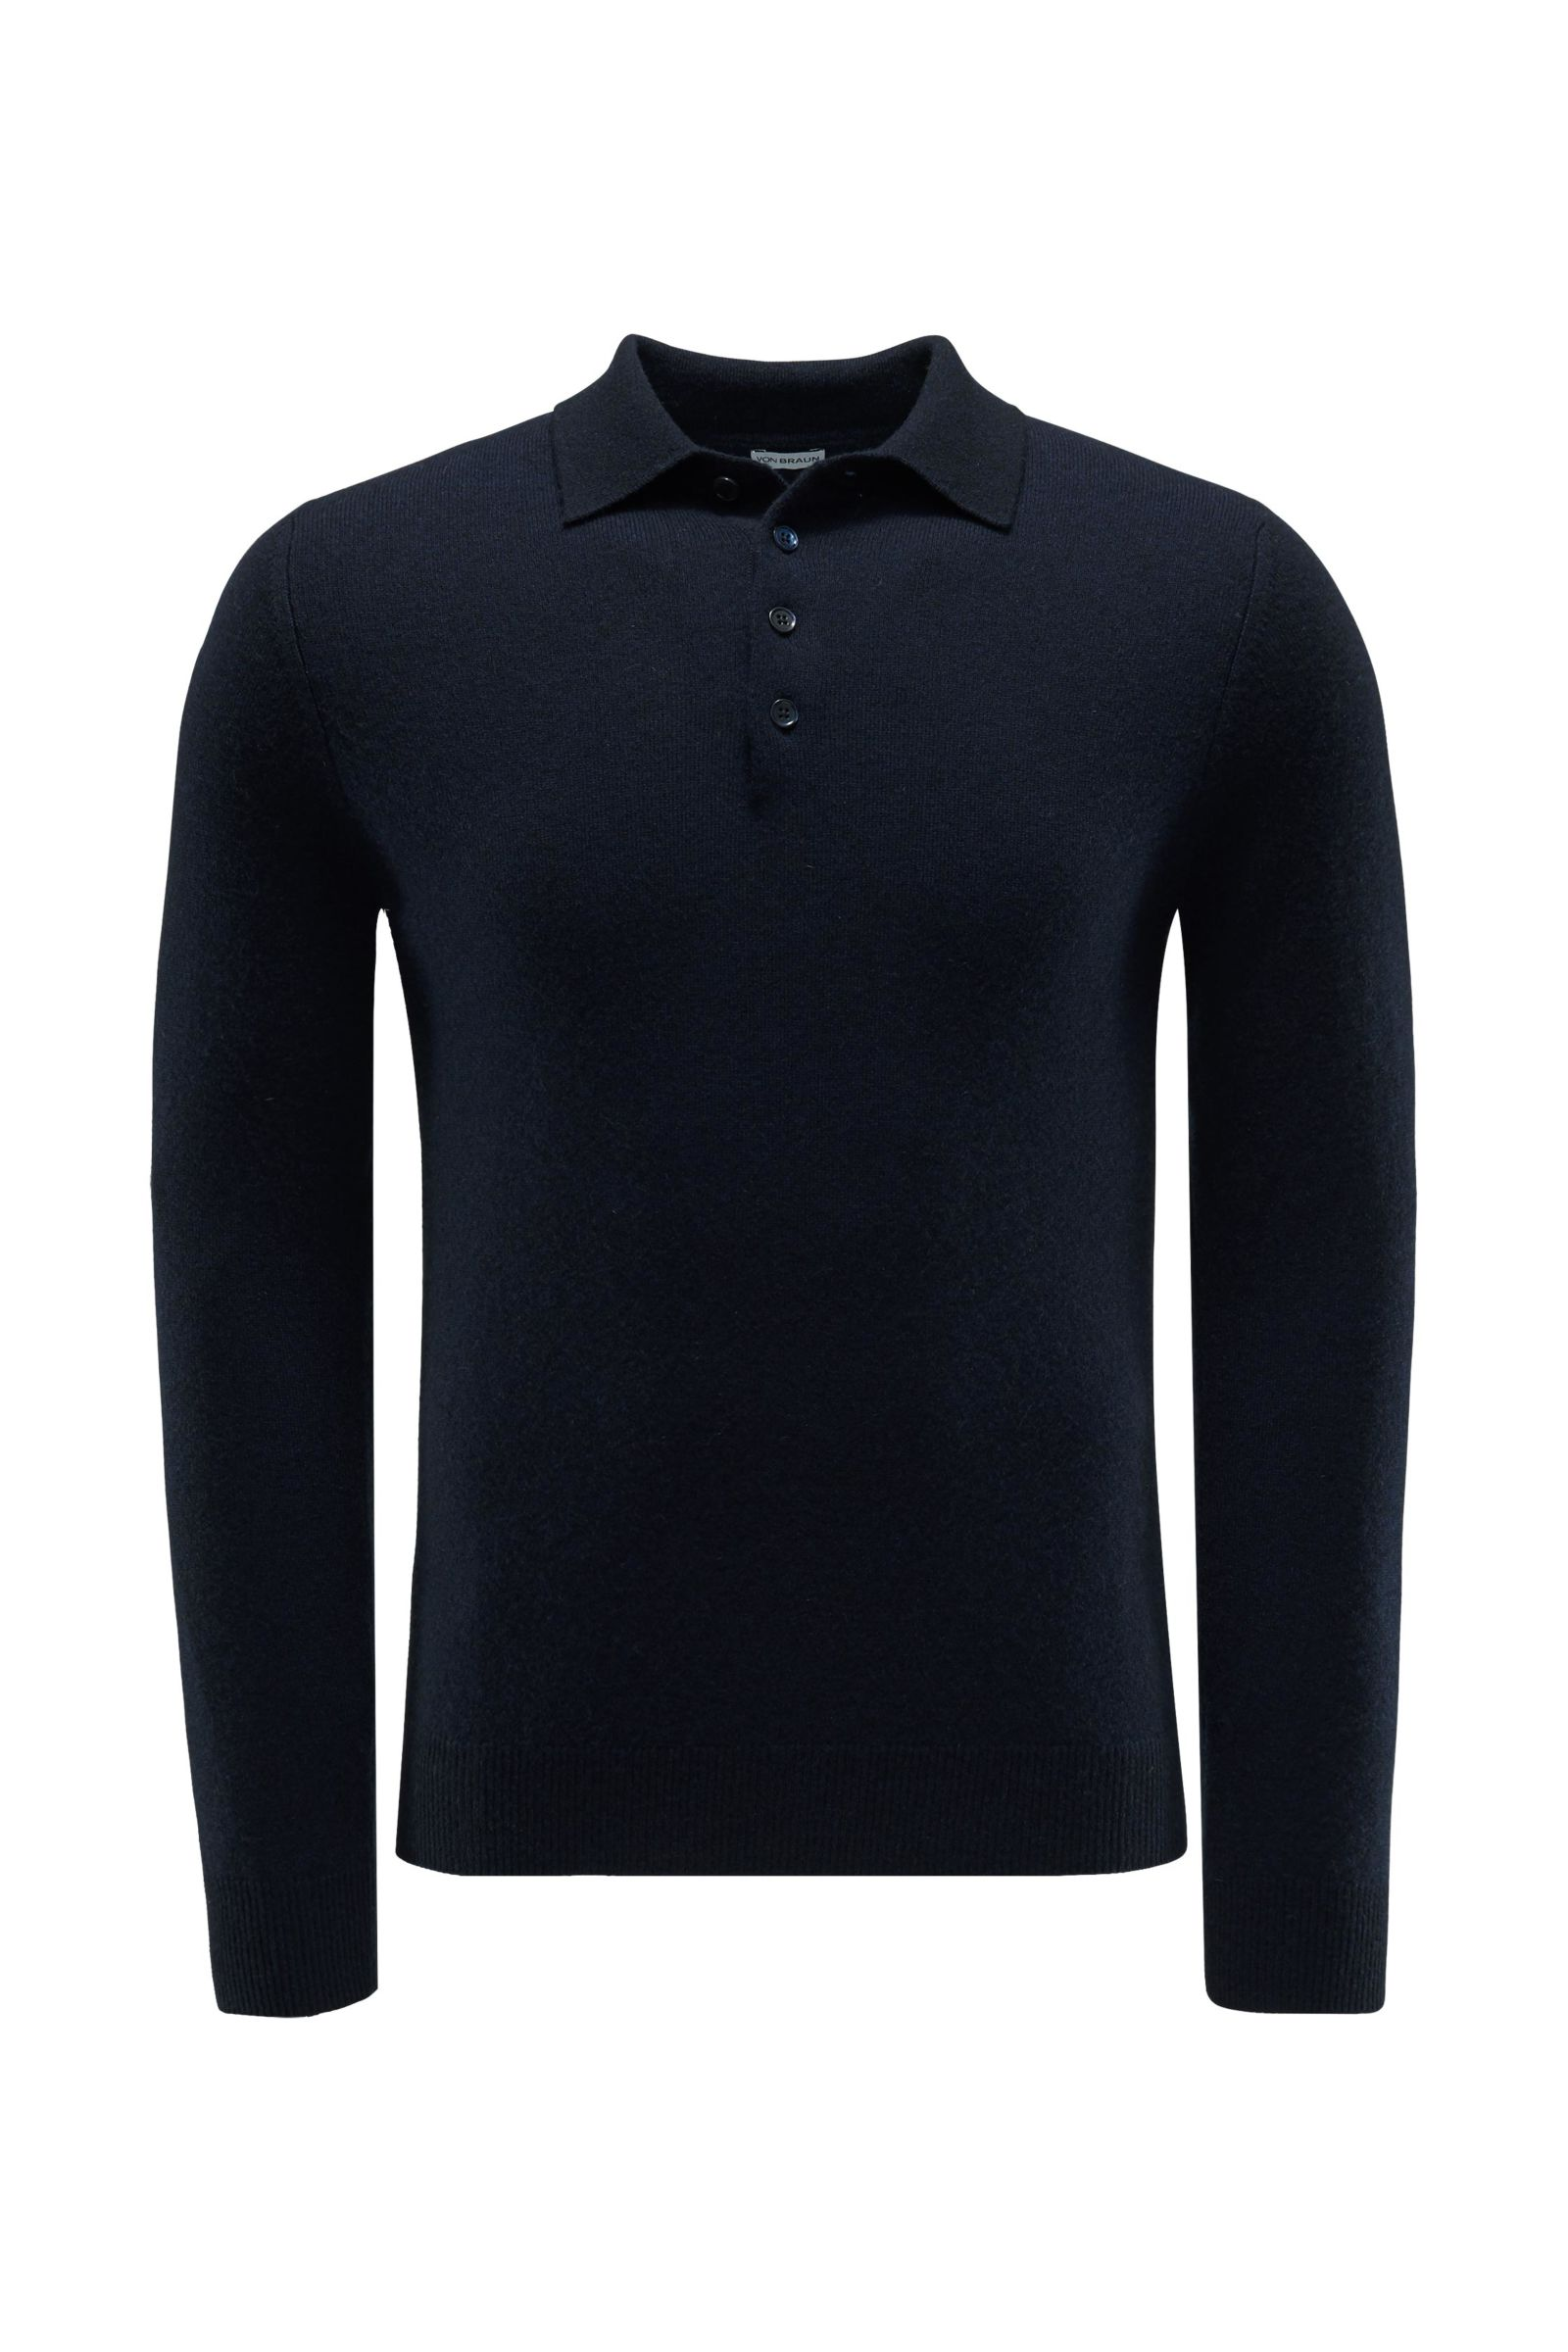 Cashmere Strickpolo navy